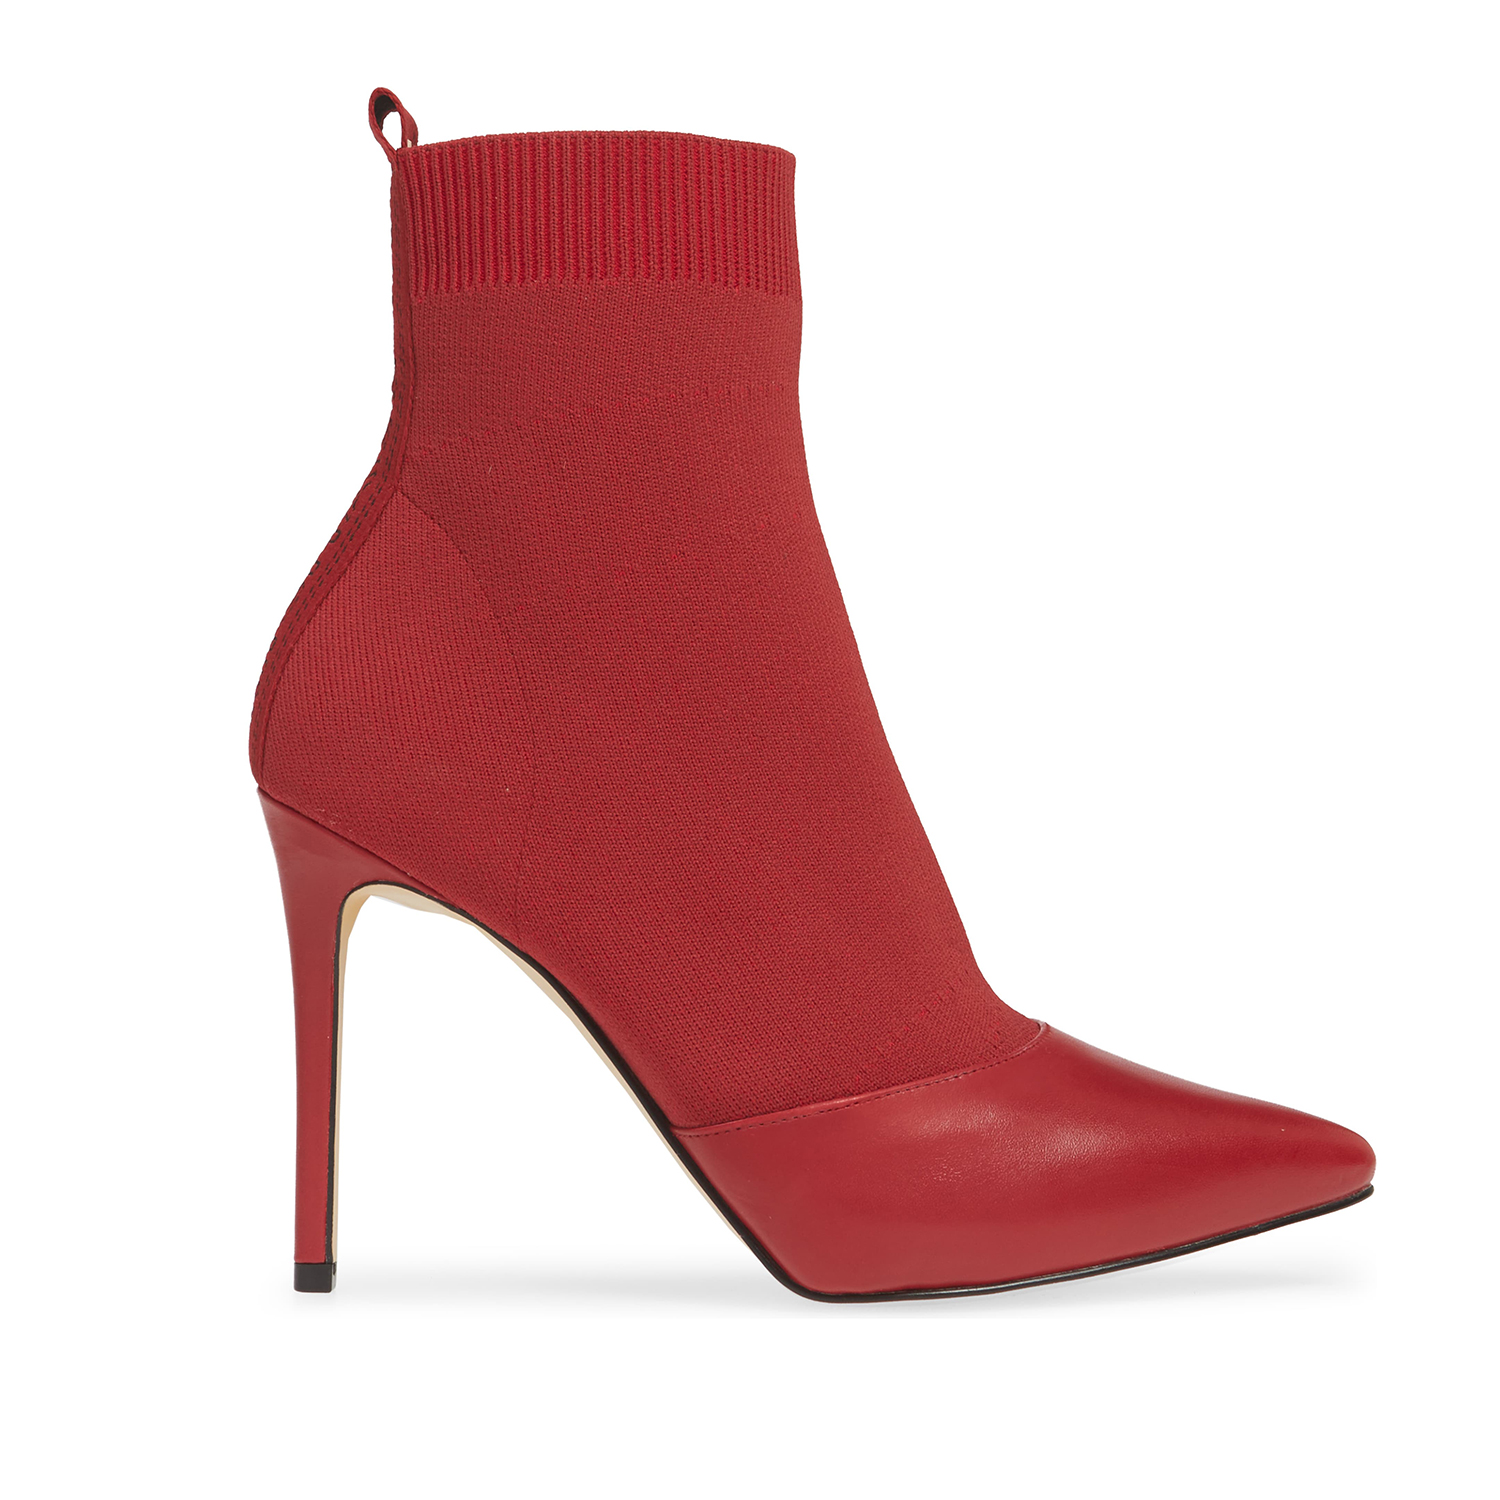 Michael Kors Vicky Bootie Scarlet Fabric Leather